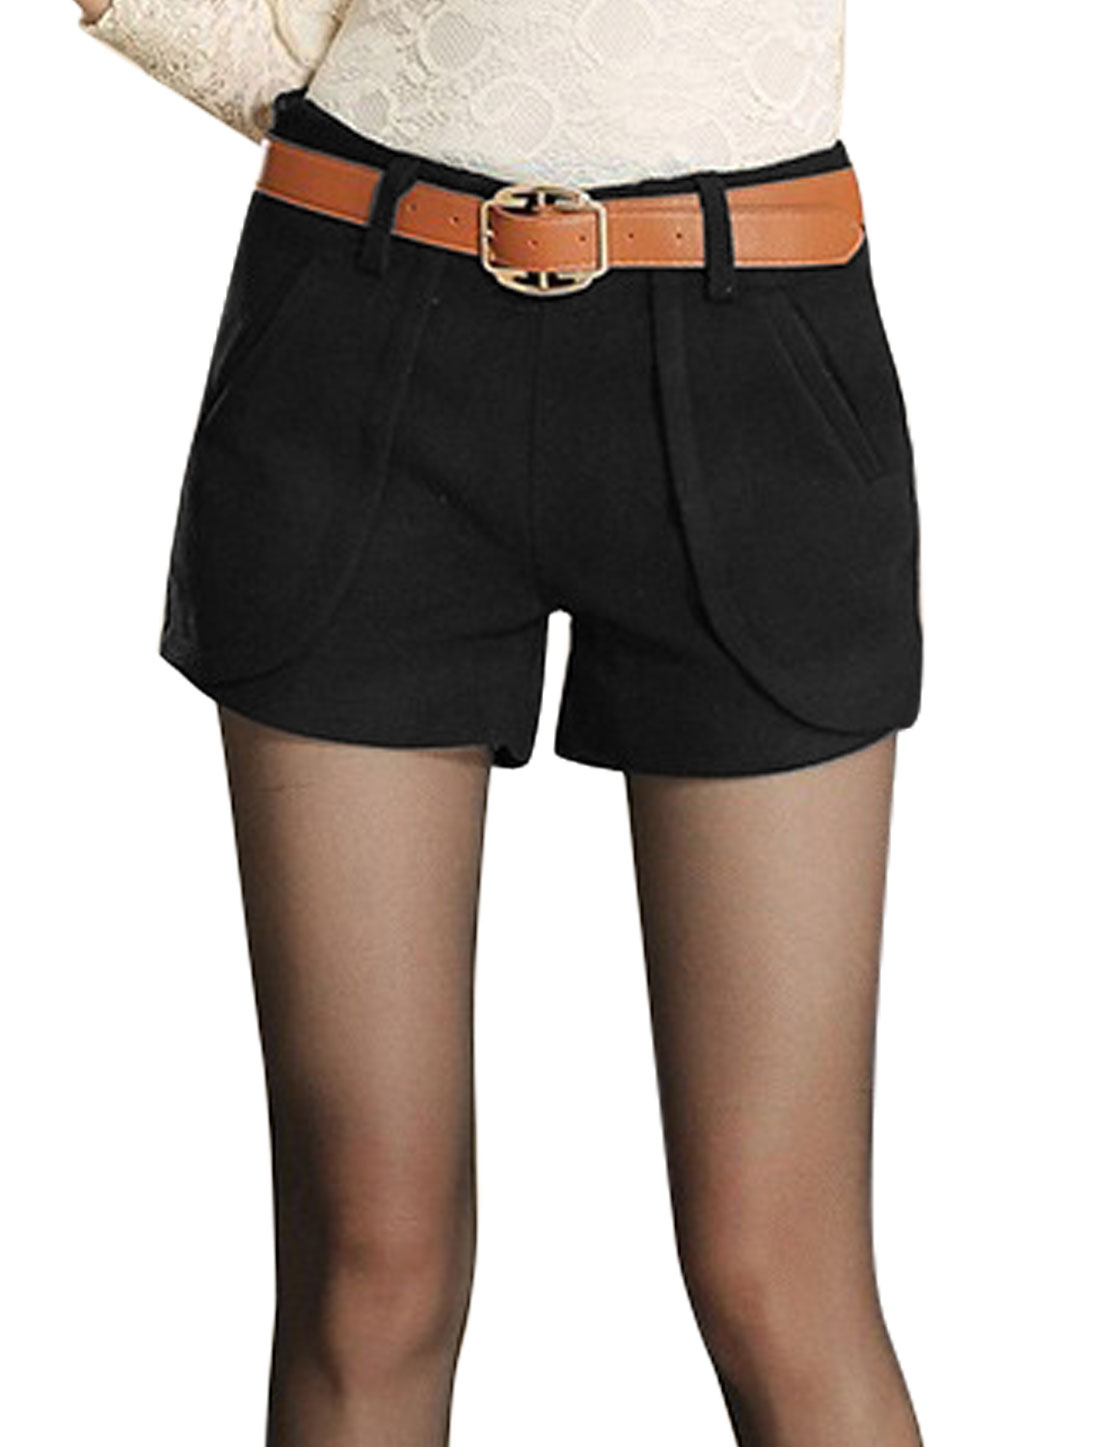 Ladies Black Mid Rise Belt Loop Zip Fly Splice Casual Short Pants M